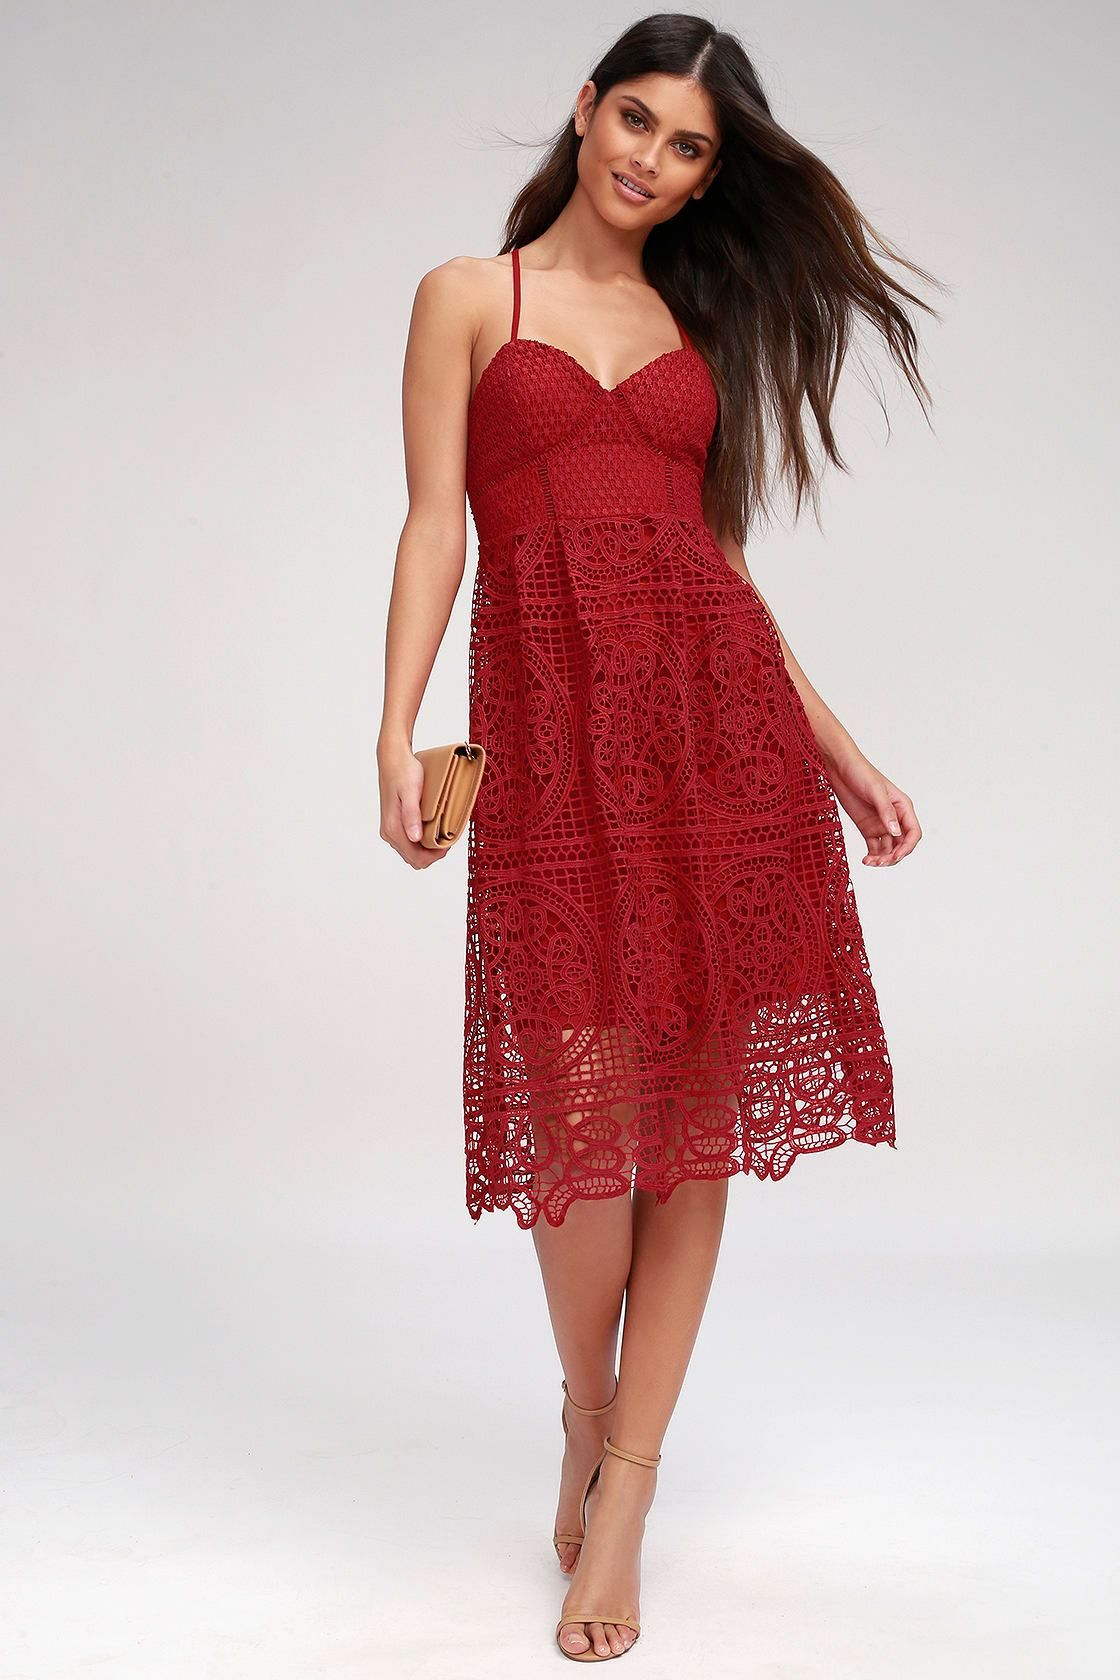 40 More Gorgeous Wedding Guest Dresses Pearls Prada Red Lace Midi Dress Red Lace Dress Lace Midi Dress [ 1680 x 1120 Pixel ]